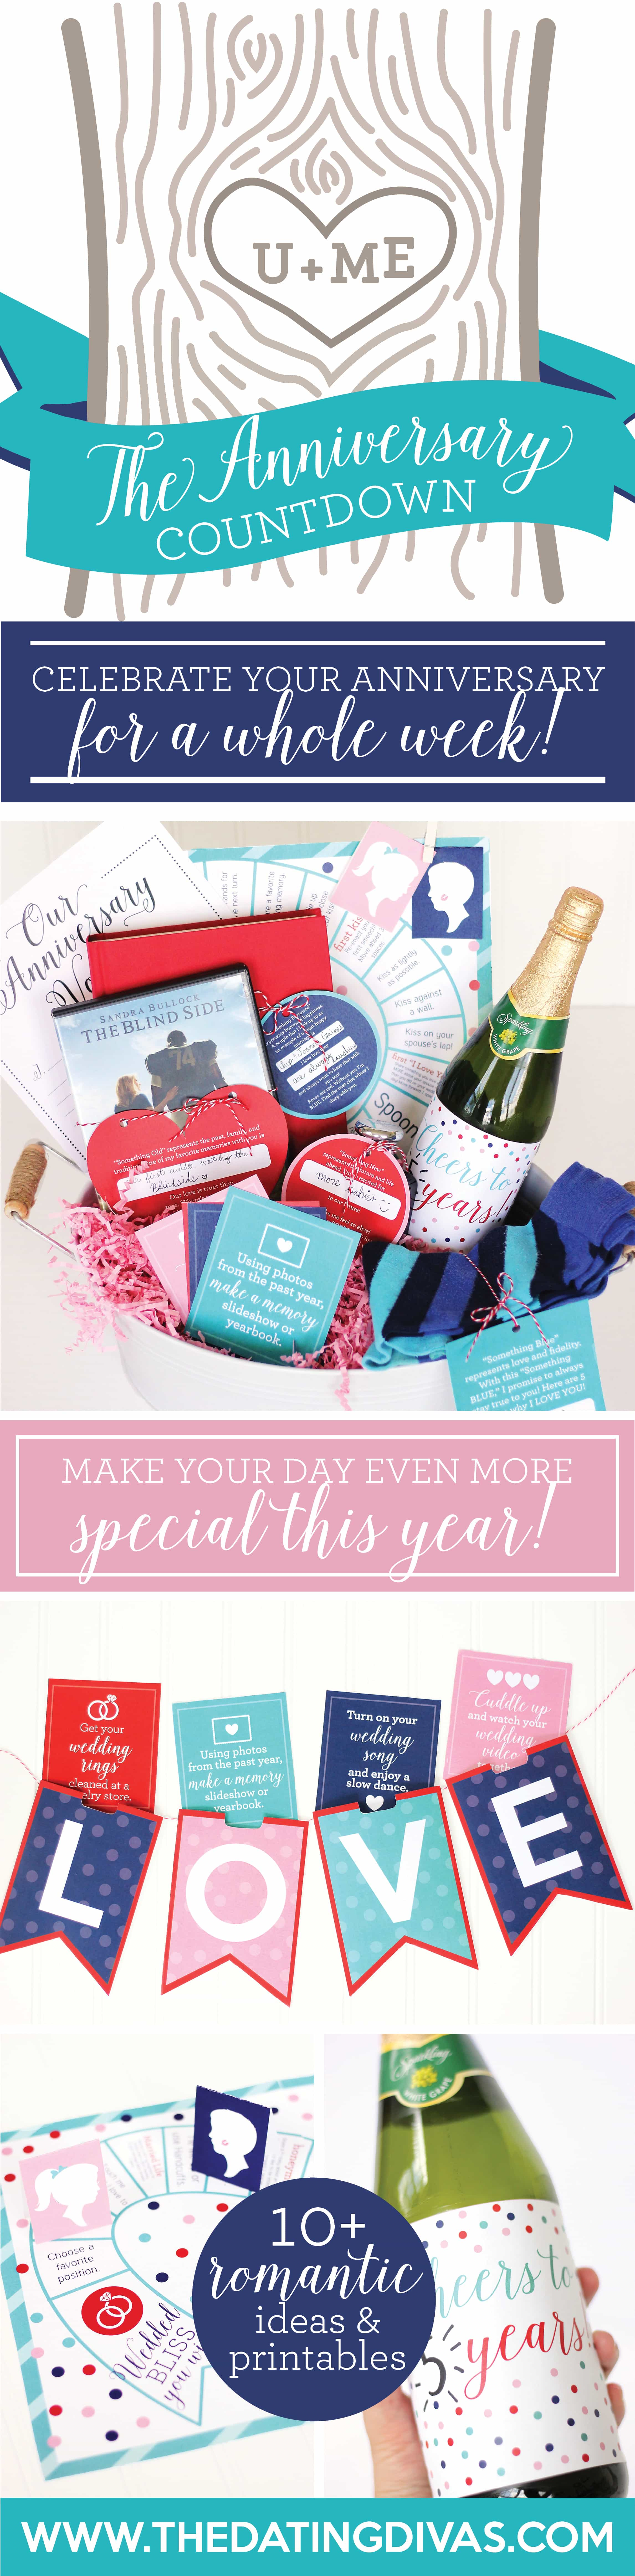 Countdown anniversary idea to celebrate your anniversary all week long! #TheDatingDivas #AnniversaryIdea